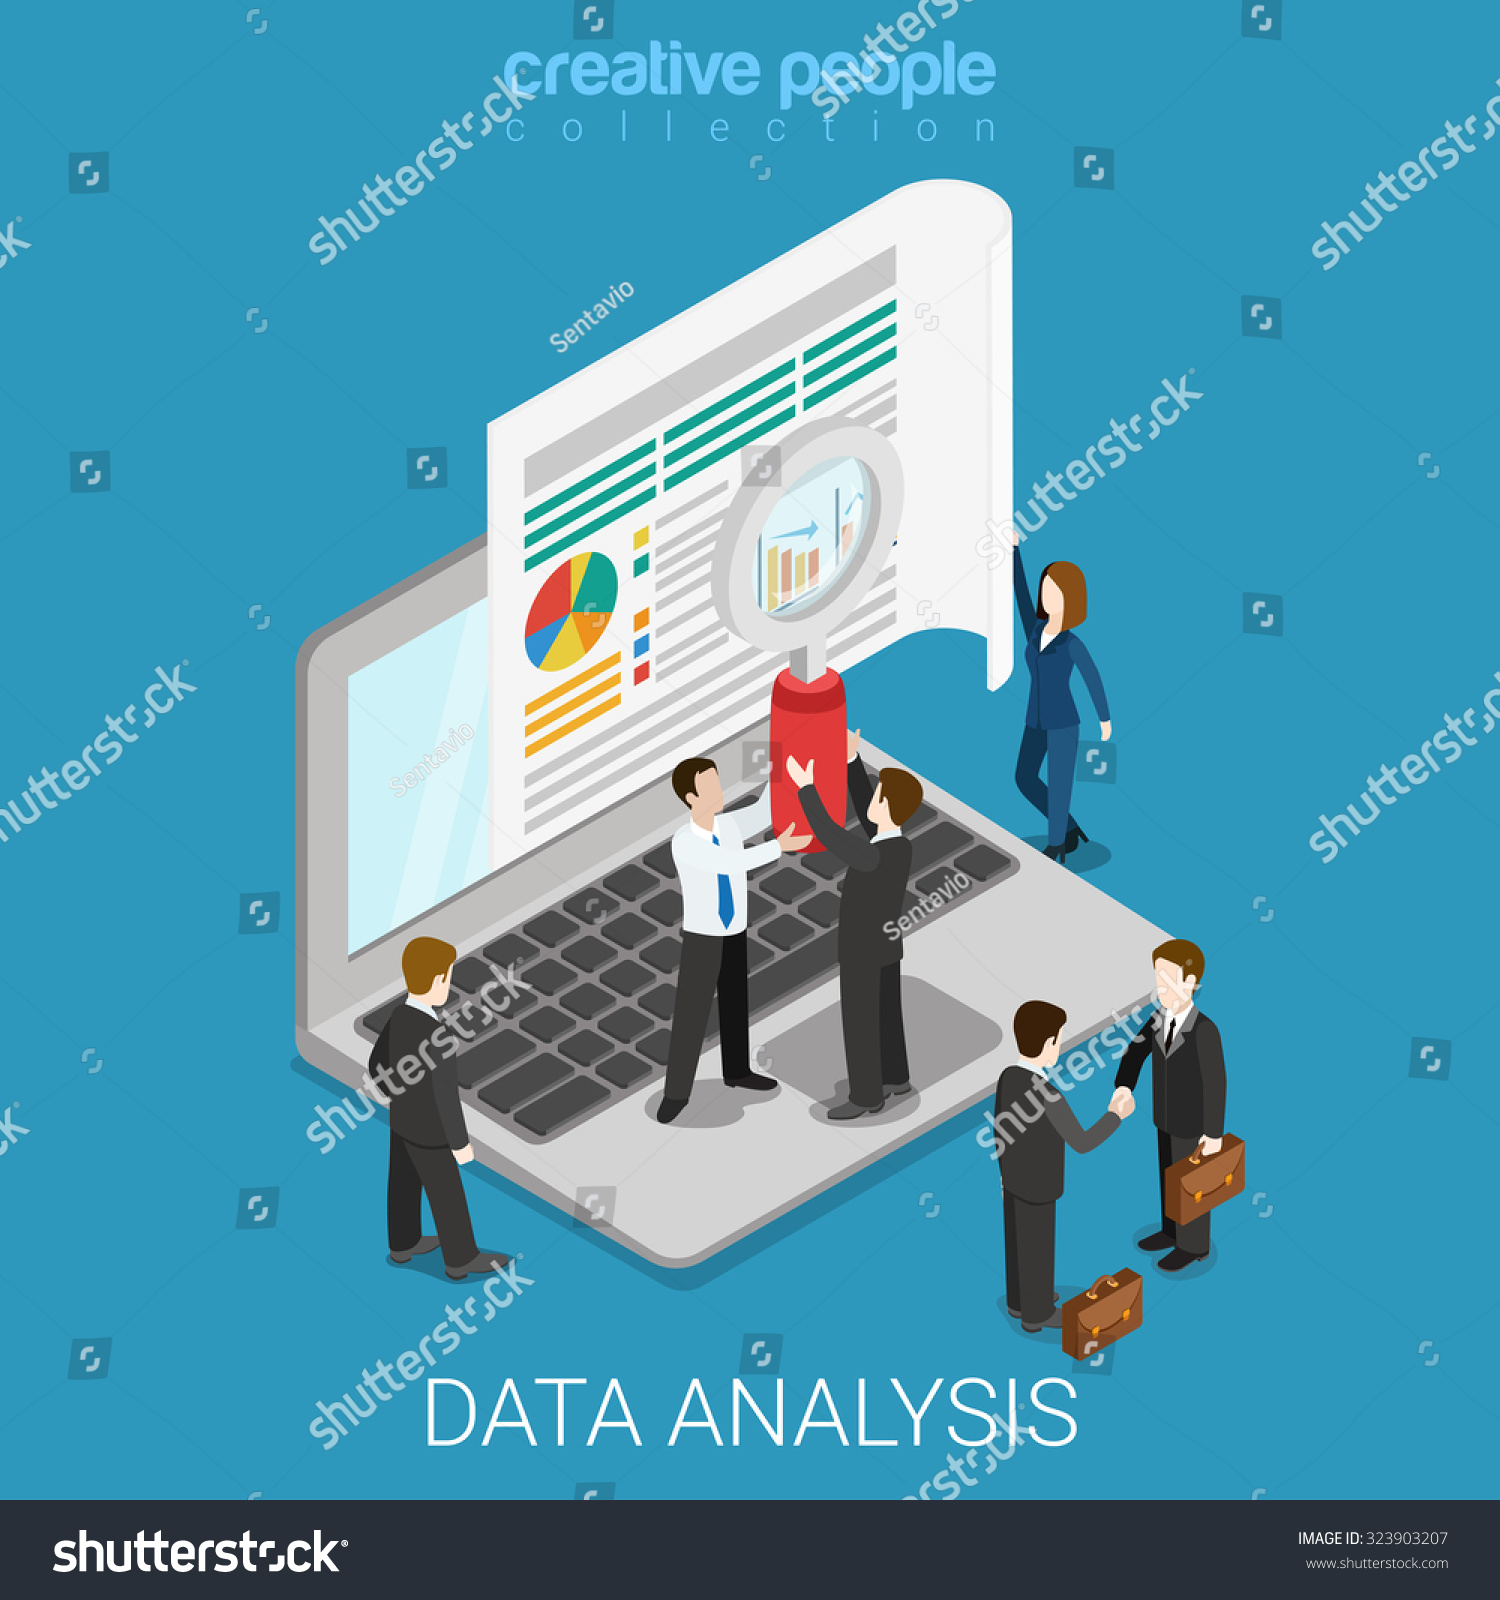 online data analysis Mastering data analysis in excel from duke university important: the focus of this course is on math - specifically, data-analysis concepts and methods - not on.